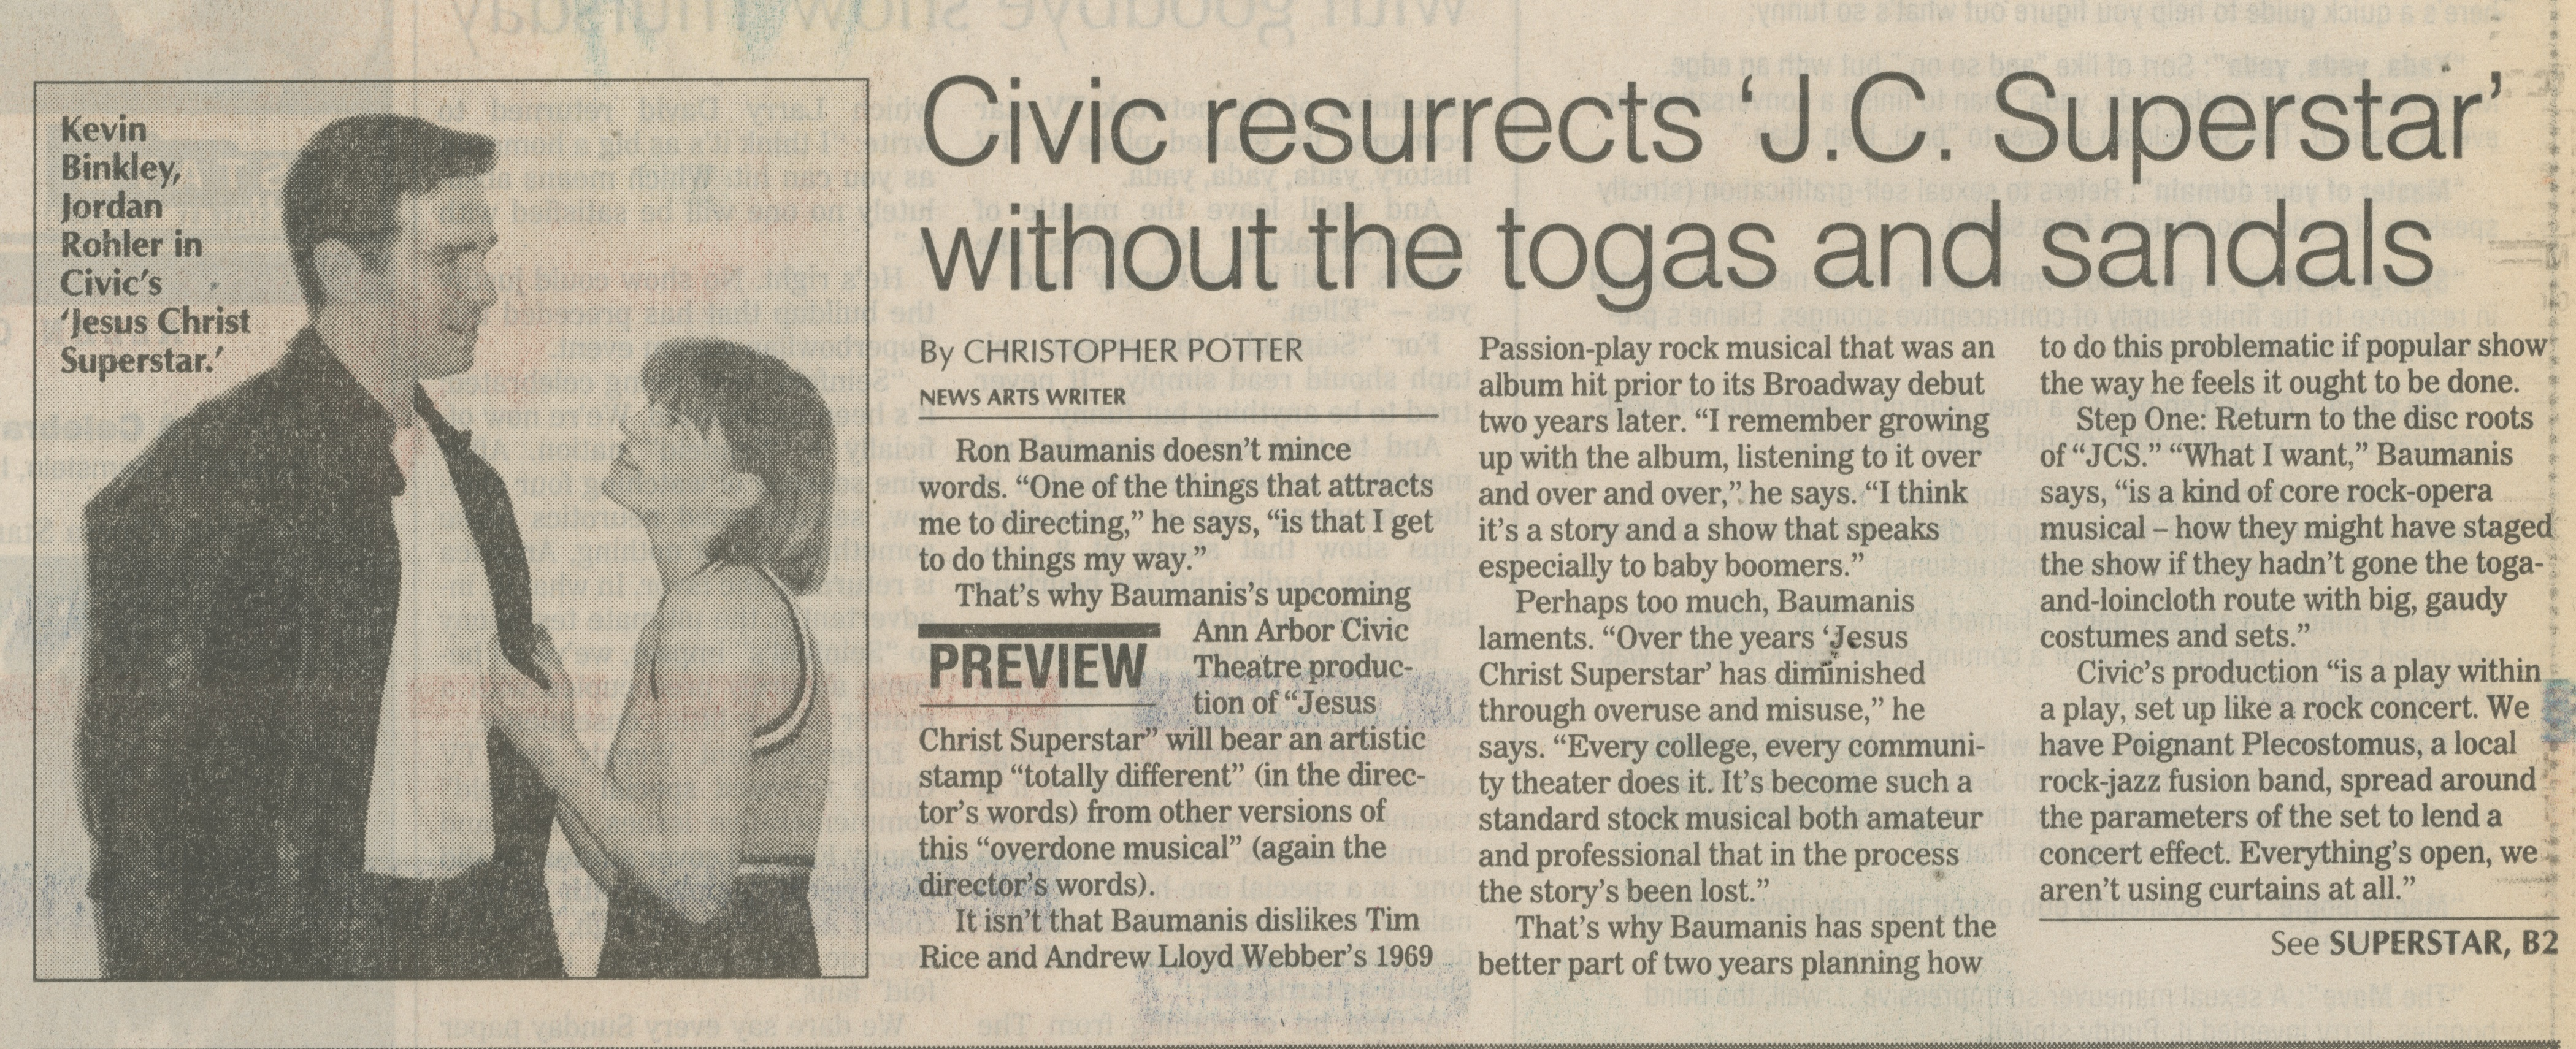 Civic Resurrects 'J.C. Superstar' Without The Togas And Sandals image